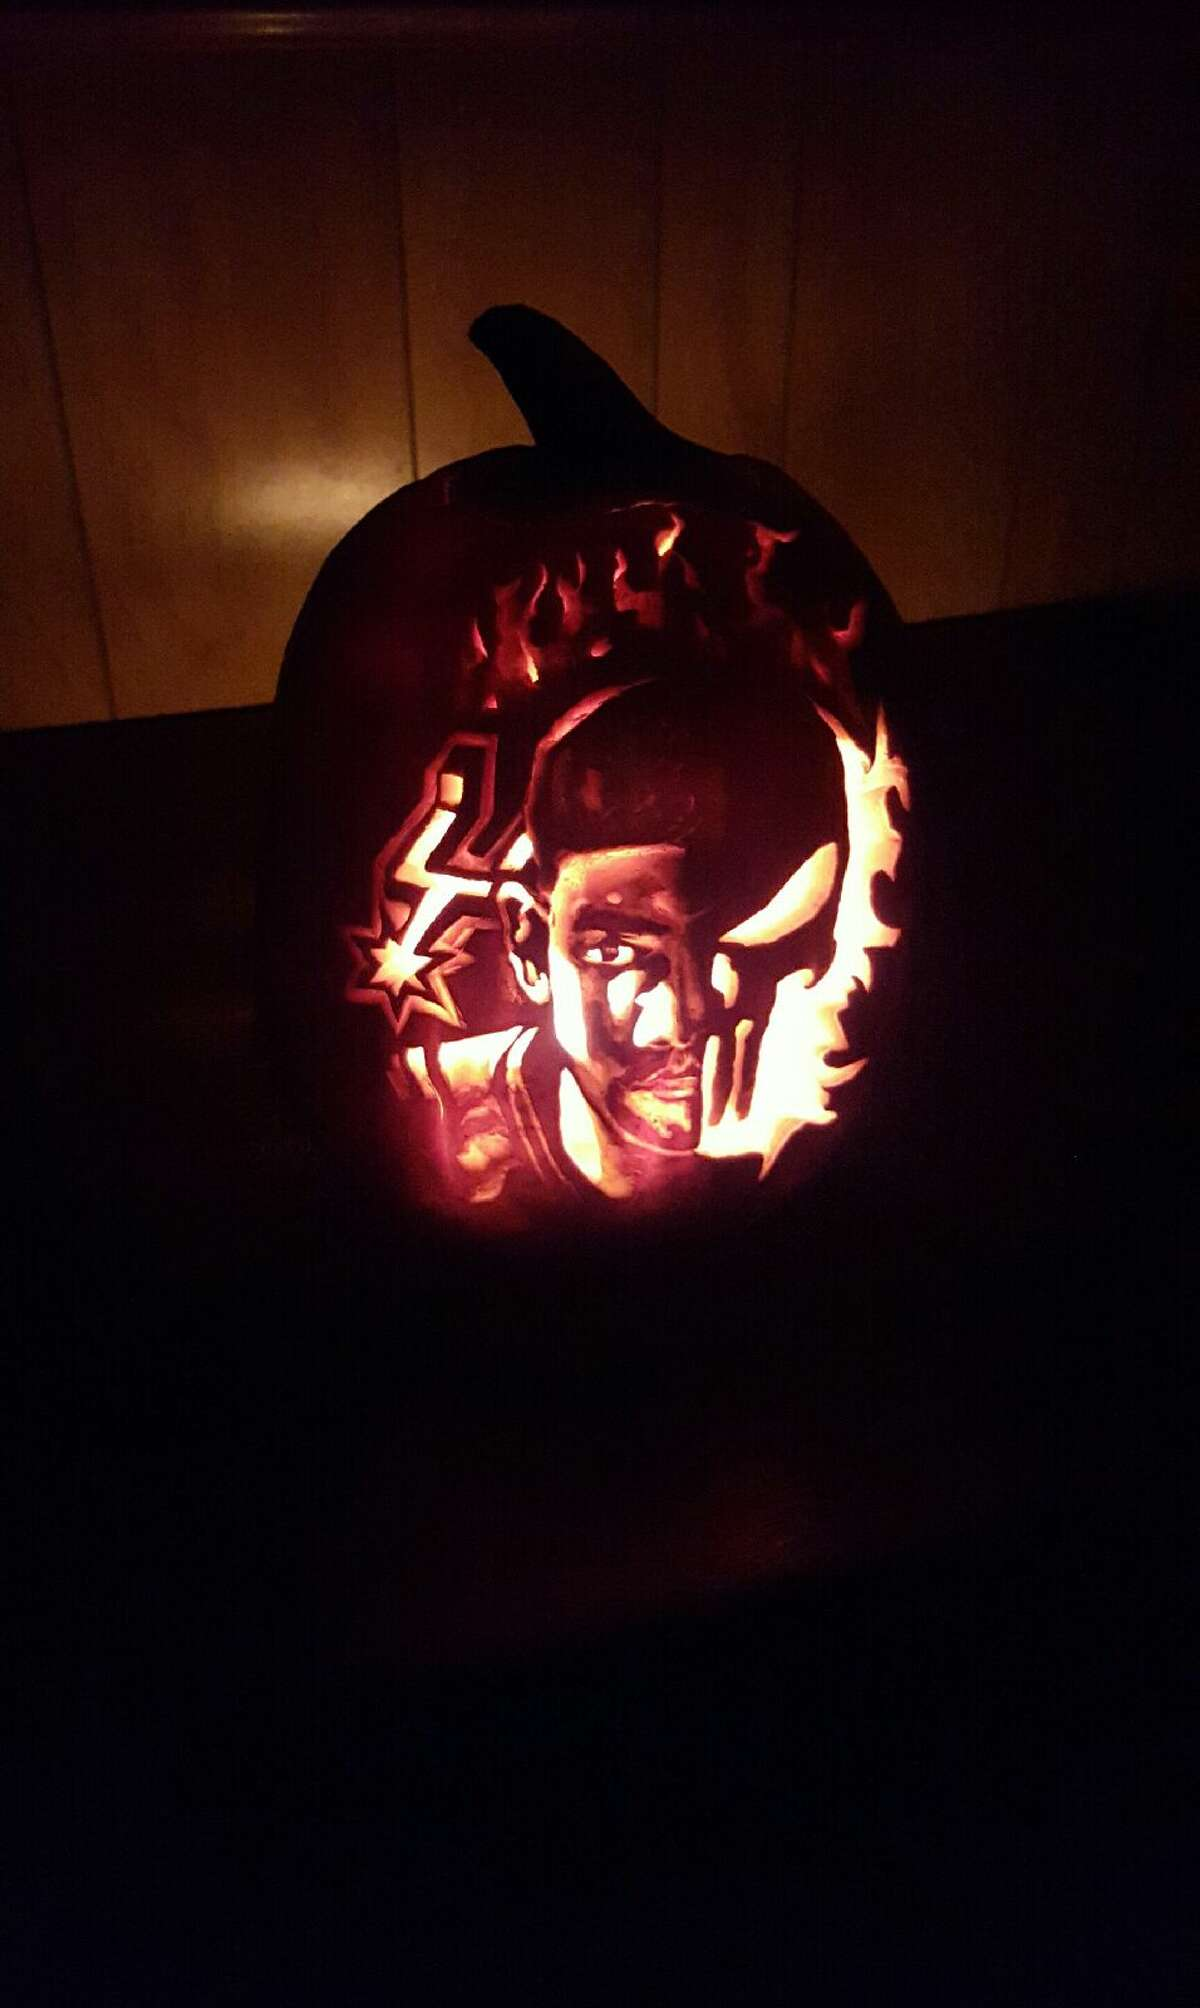 A transplanted Spurs fan said he's showing his unwavering Silver and Black pride while in Cleveland Cavaliers territory with his amazing pumpkin carving of Tim Duncan.